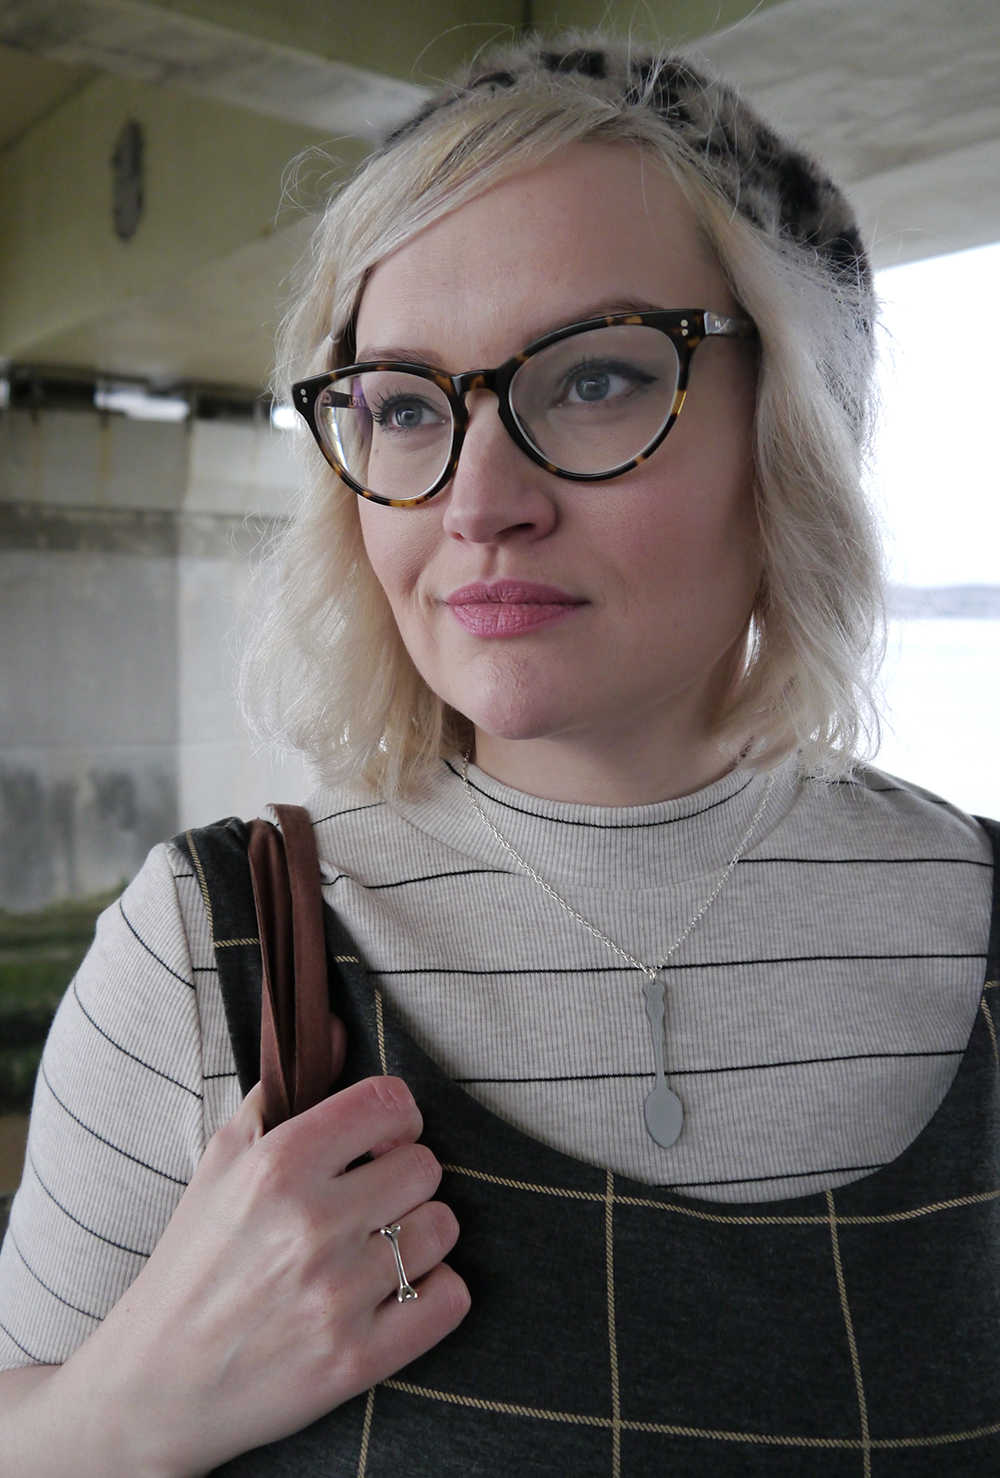 IOLLA Muir tortoise shell frames, leopard print beret, kawaii spoon necklace, layering checks, Scottish winter style, Scottish fashion blogger, Tay Bridge, Dundee style, what to wear in winter in Scotland, Kimberley Grahame, pretty girl with glasses